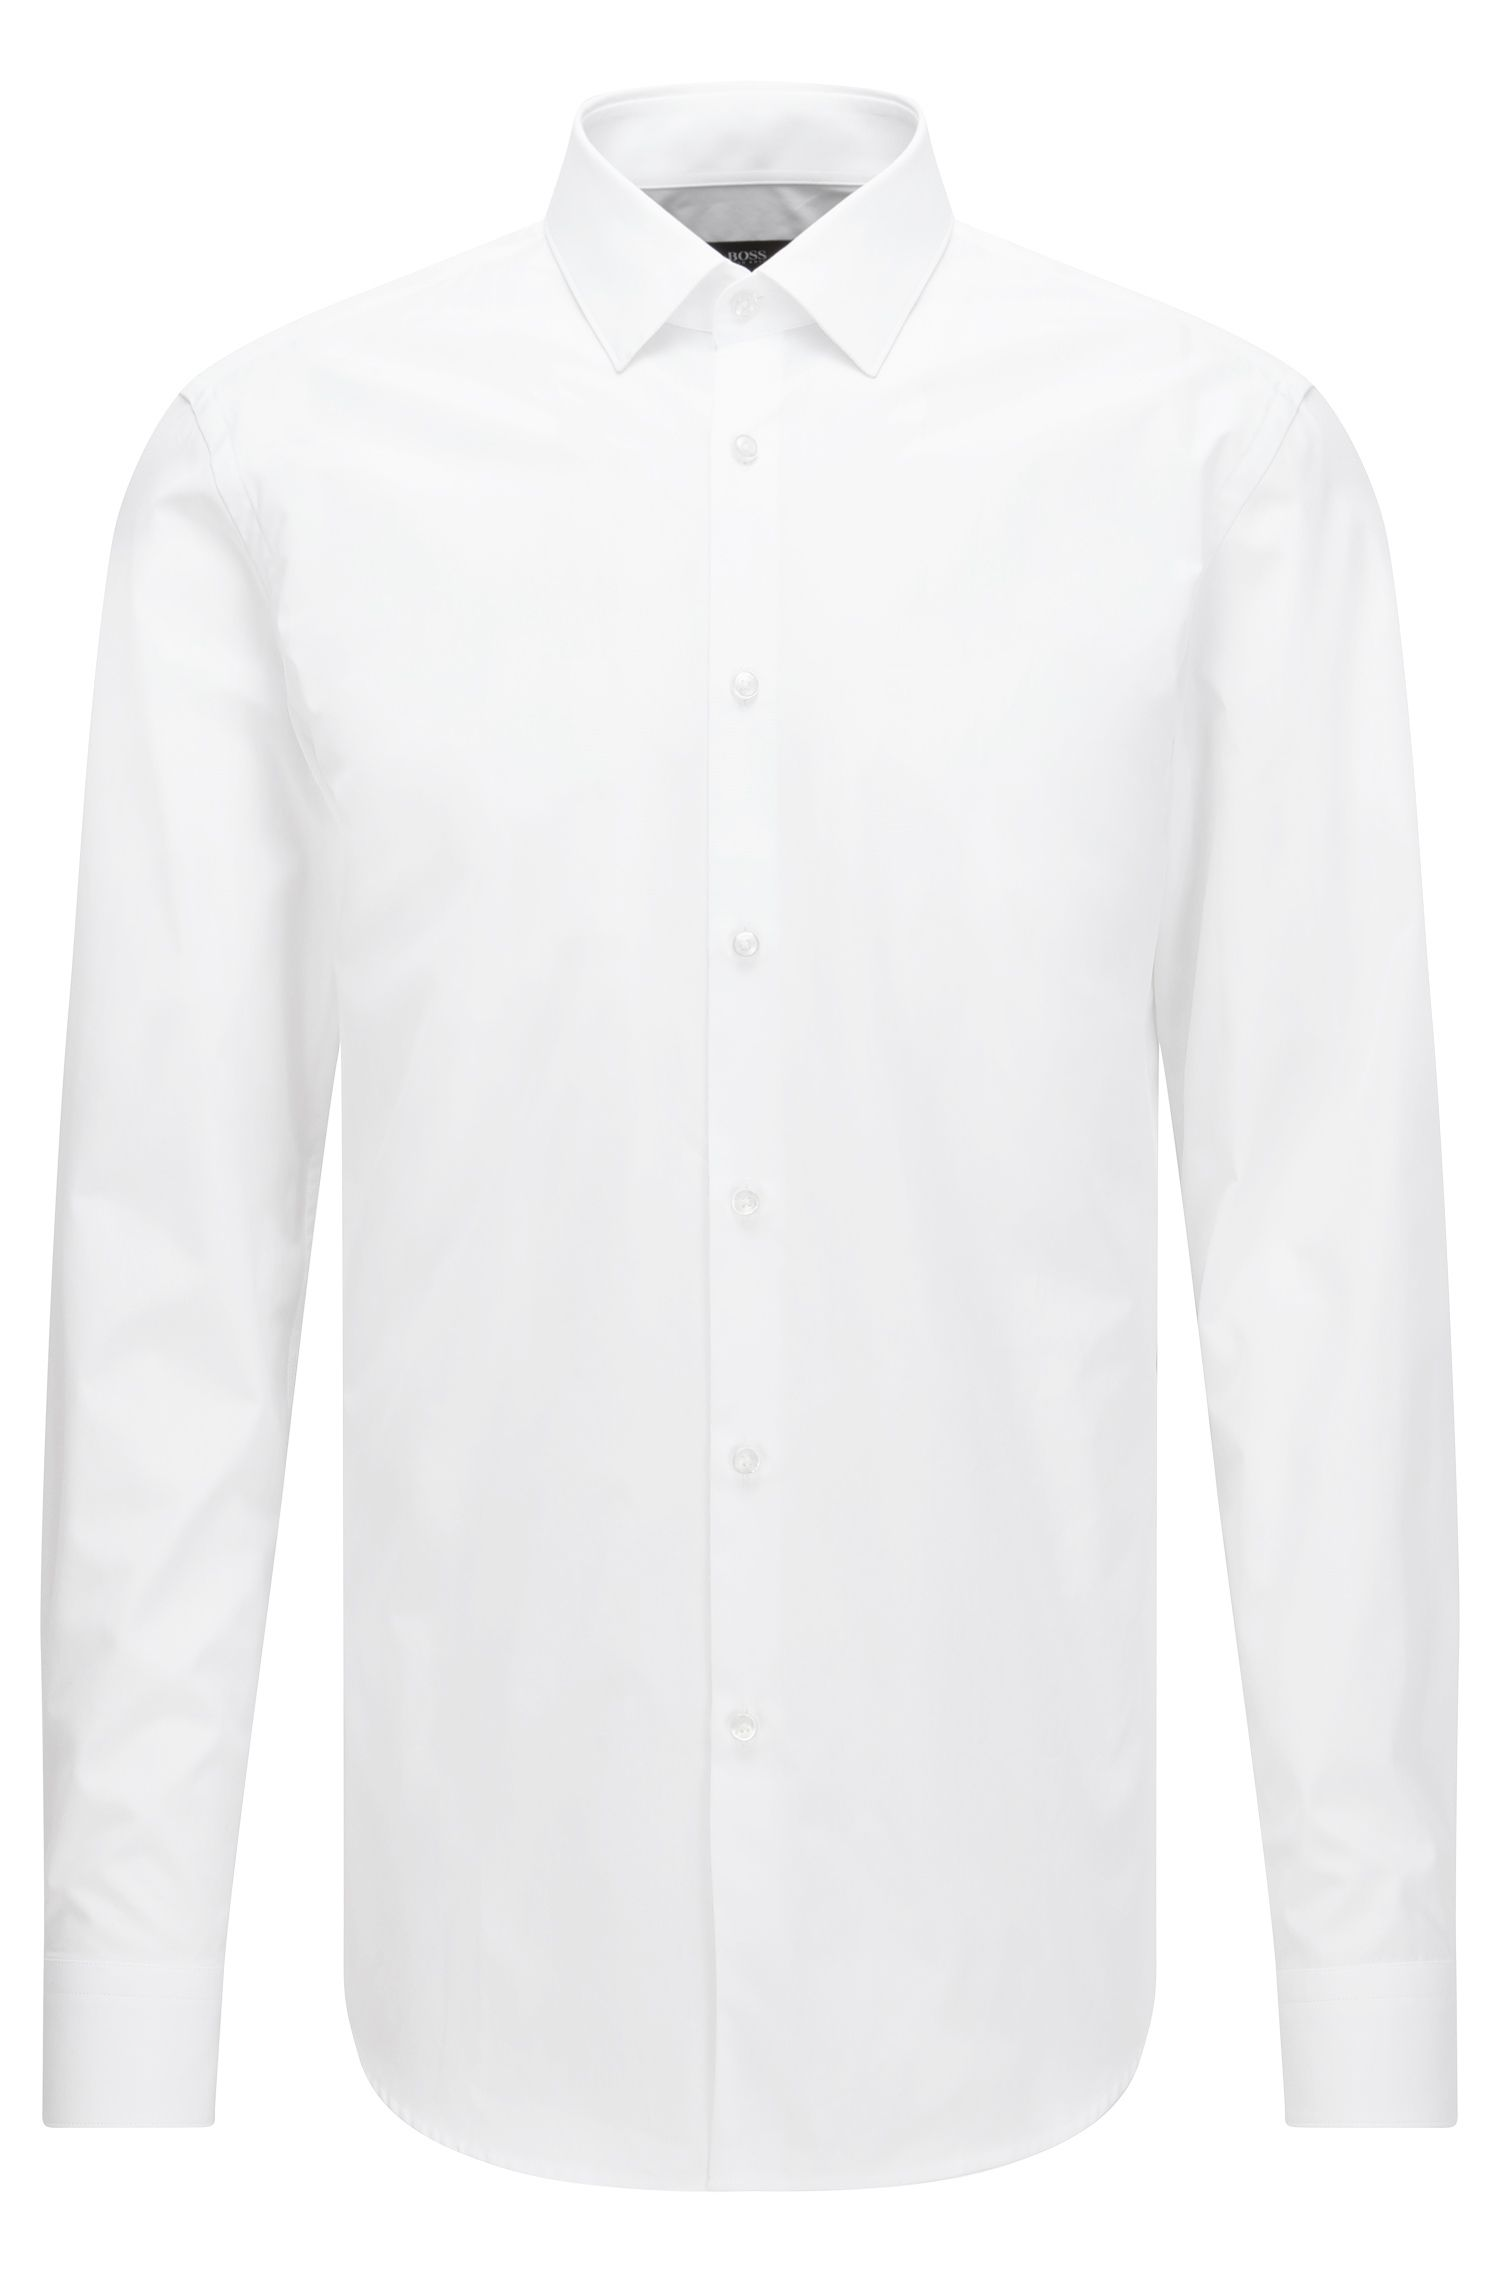 Two-Ply Cotton Dress Shirt, Slim Fit | Isko